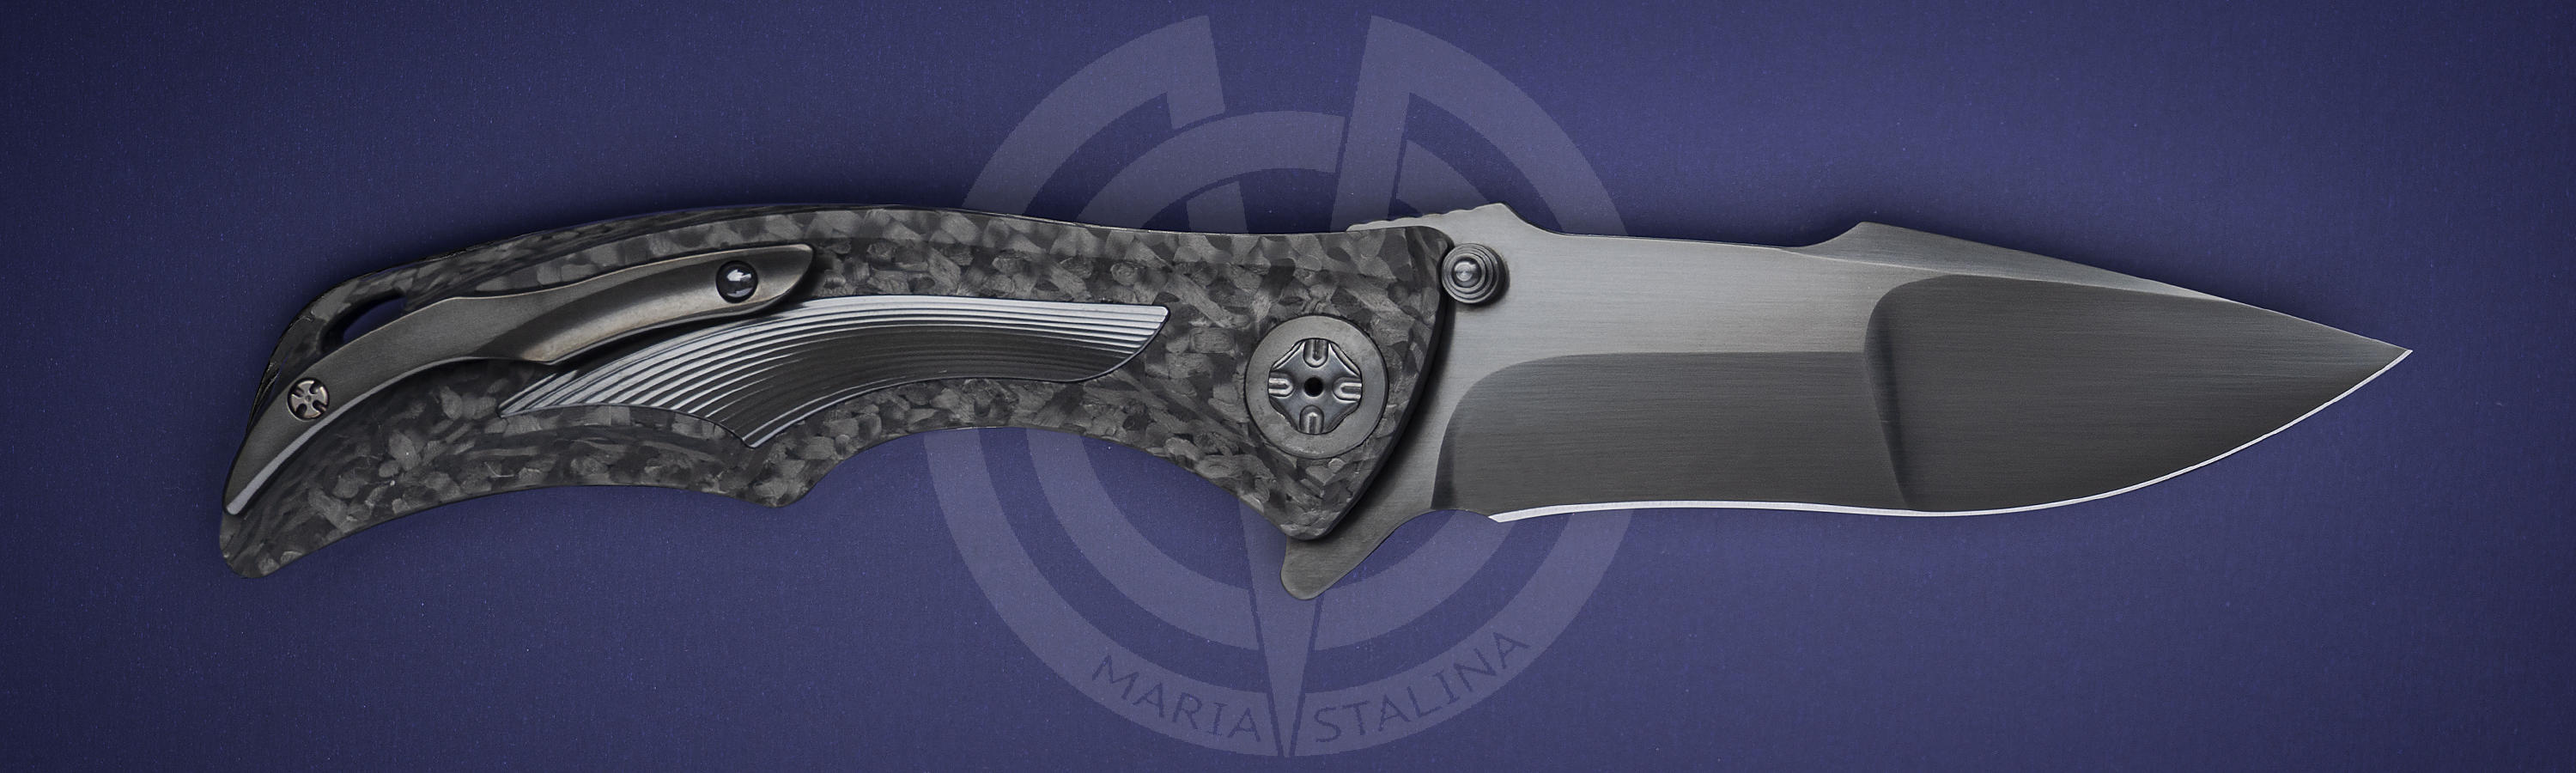 Blade material	steel RWL-34 knife Down Integral Black DLC